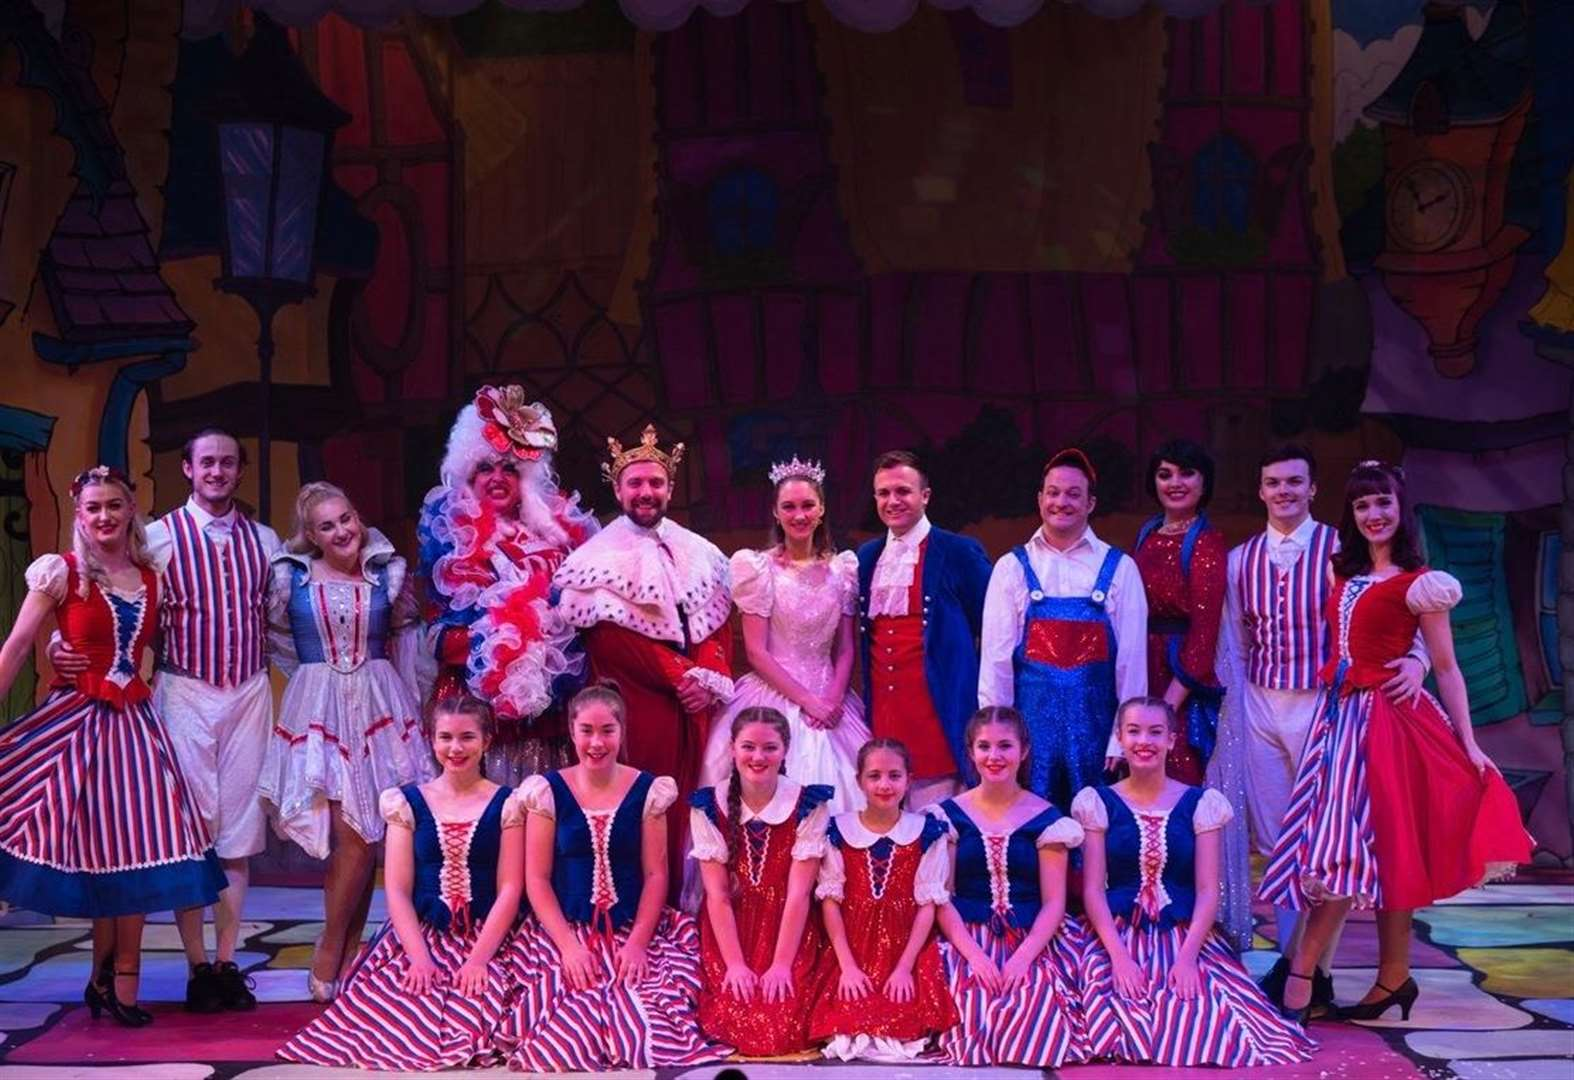 PANTO REVIEW: JACK AND THE BEANSTALK